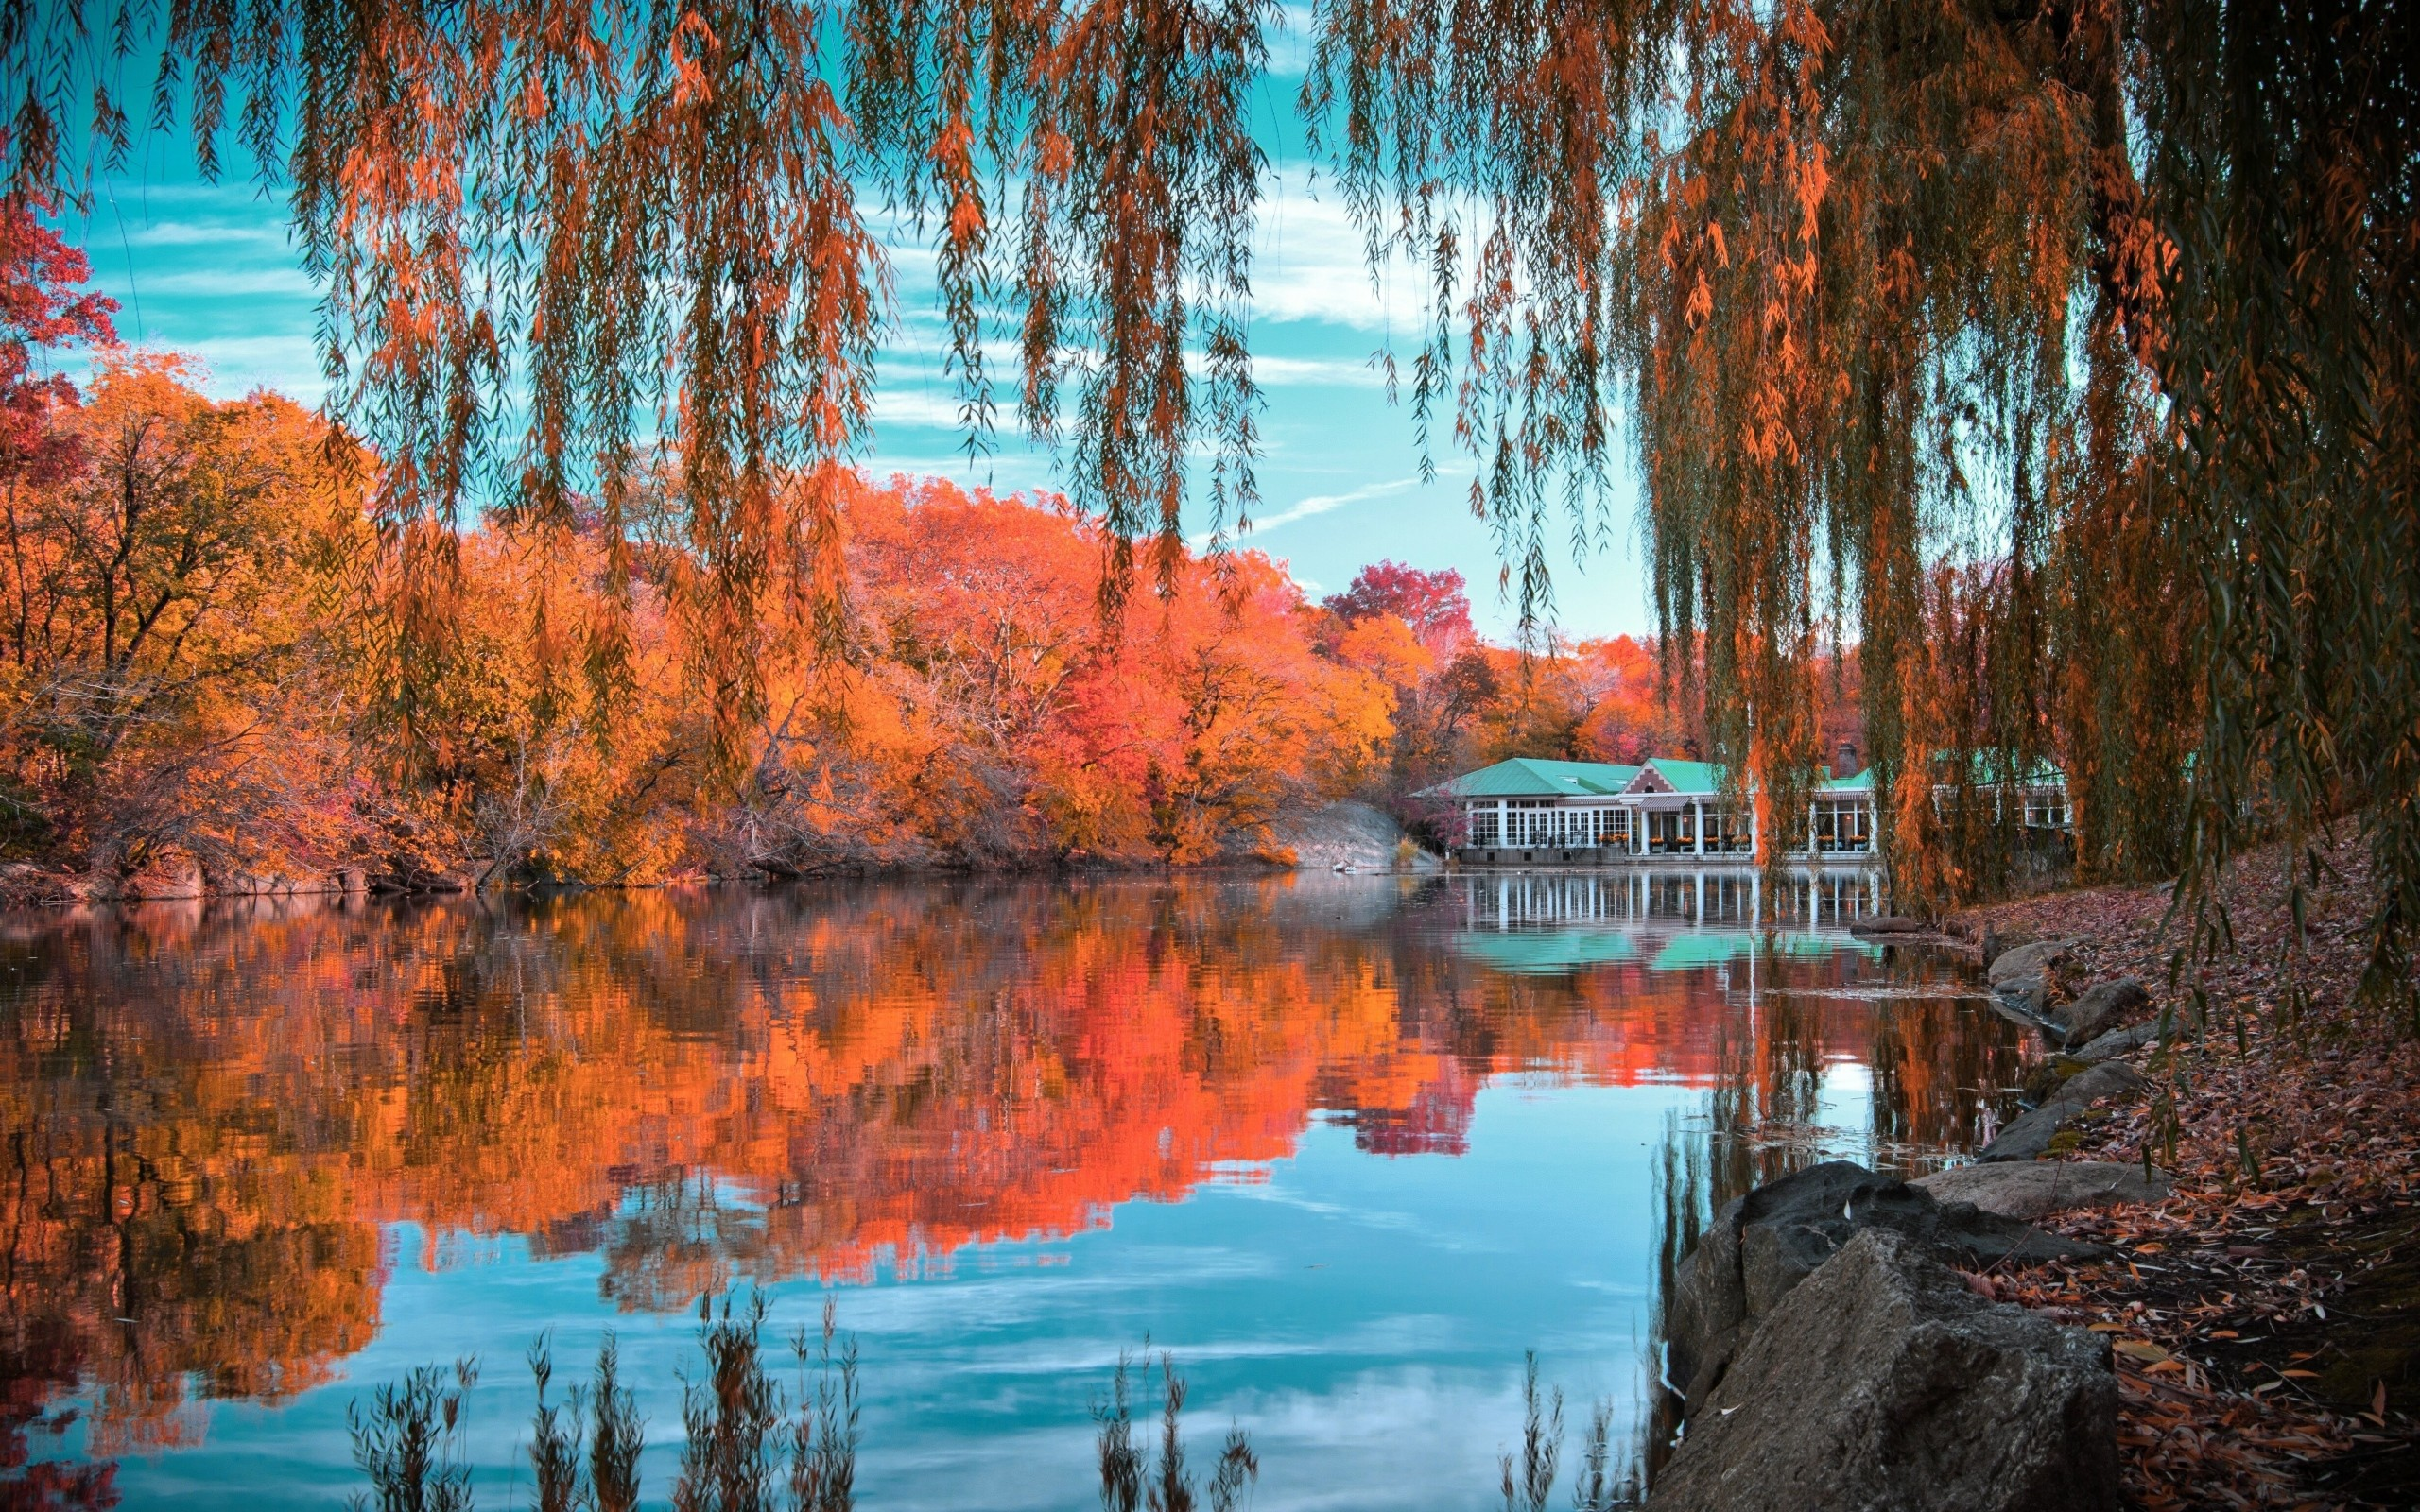 2560x1600 Preview wallpaper central park, new york, autumn, beautiful landscape